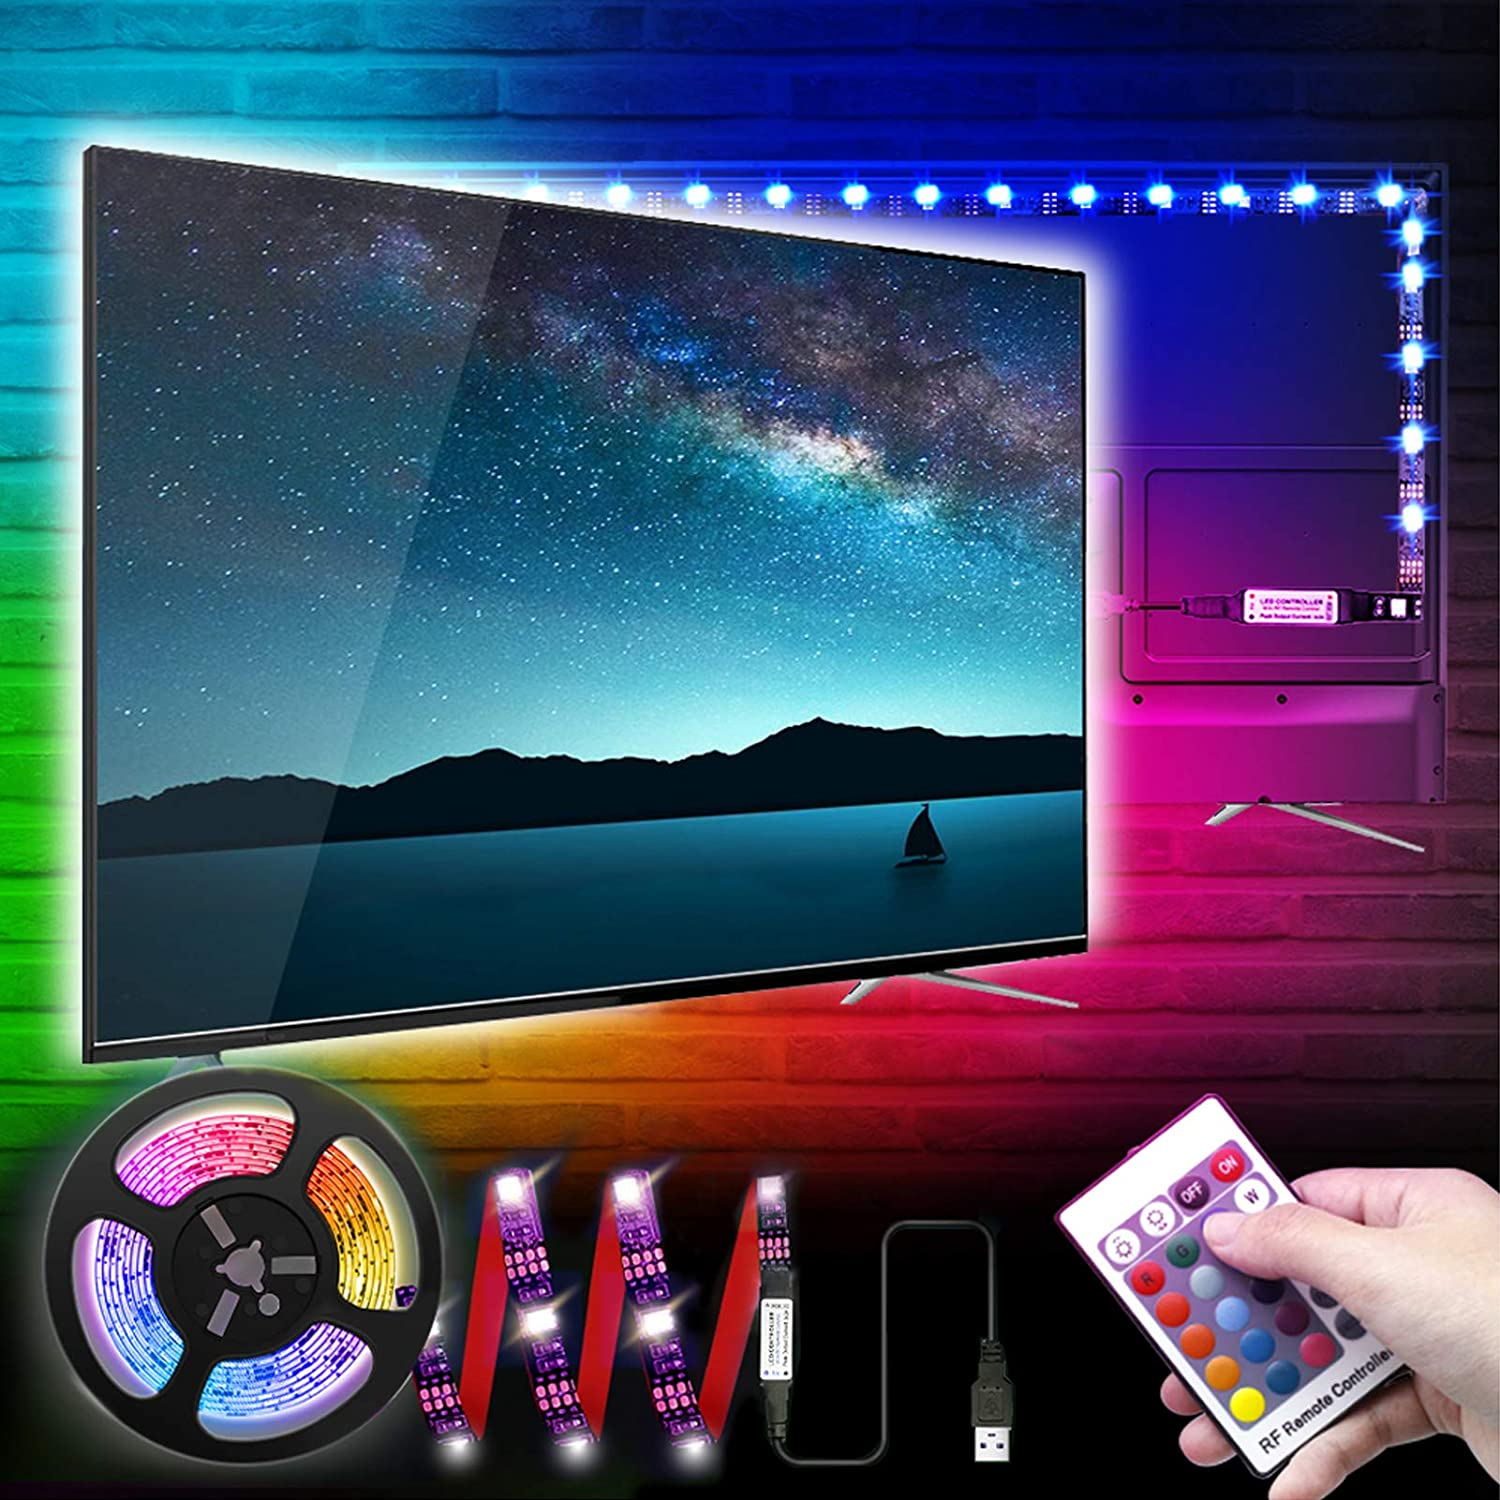 LED TV Backlights, 1M/3.3Ft RGB LED Strip Lights for TV 32-50in, 5V USB Monitor Backlight with Remote 16 Colors for Computer Home Theatre